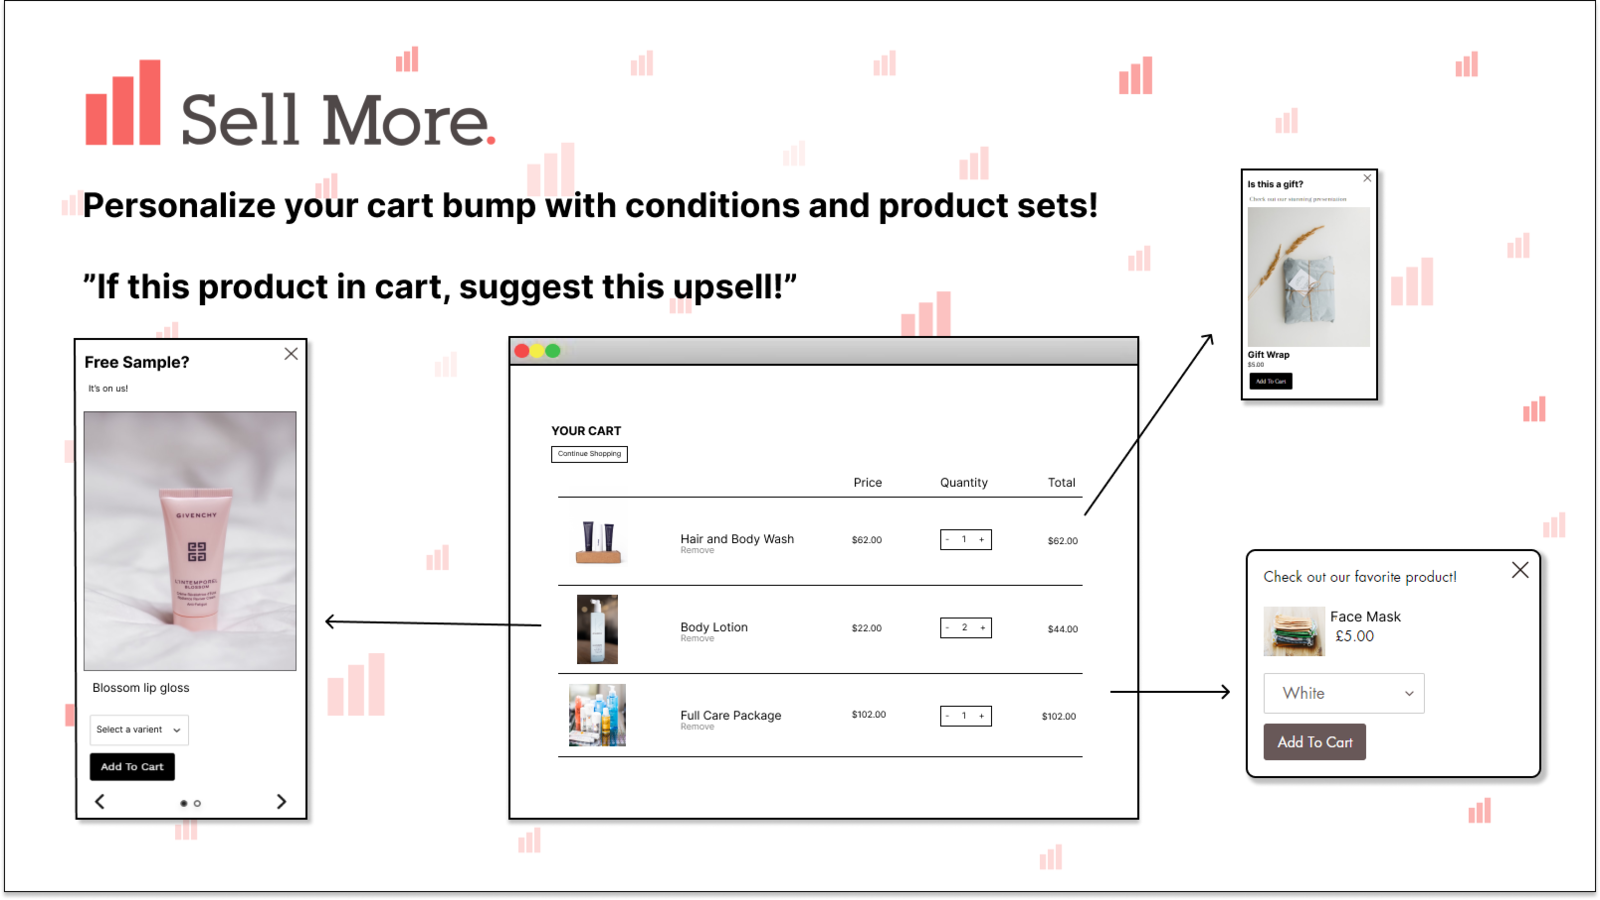 Personalize your cart bump with conditions and product sets